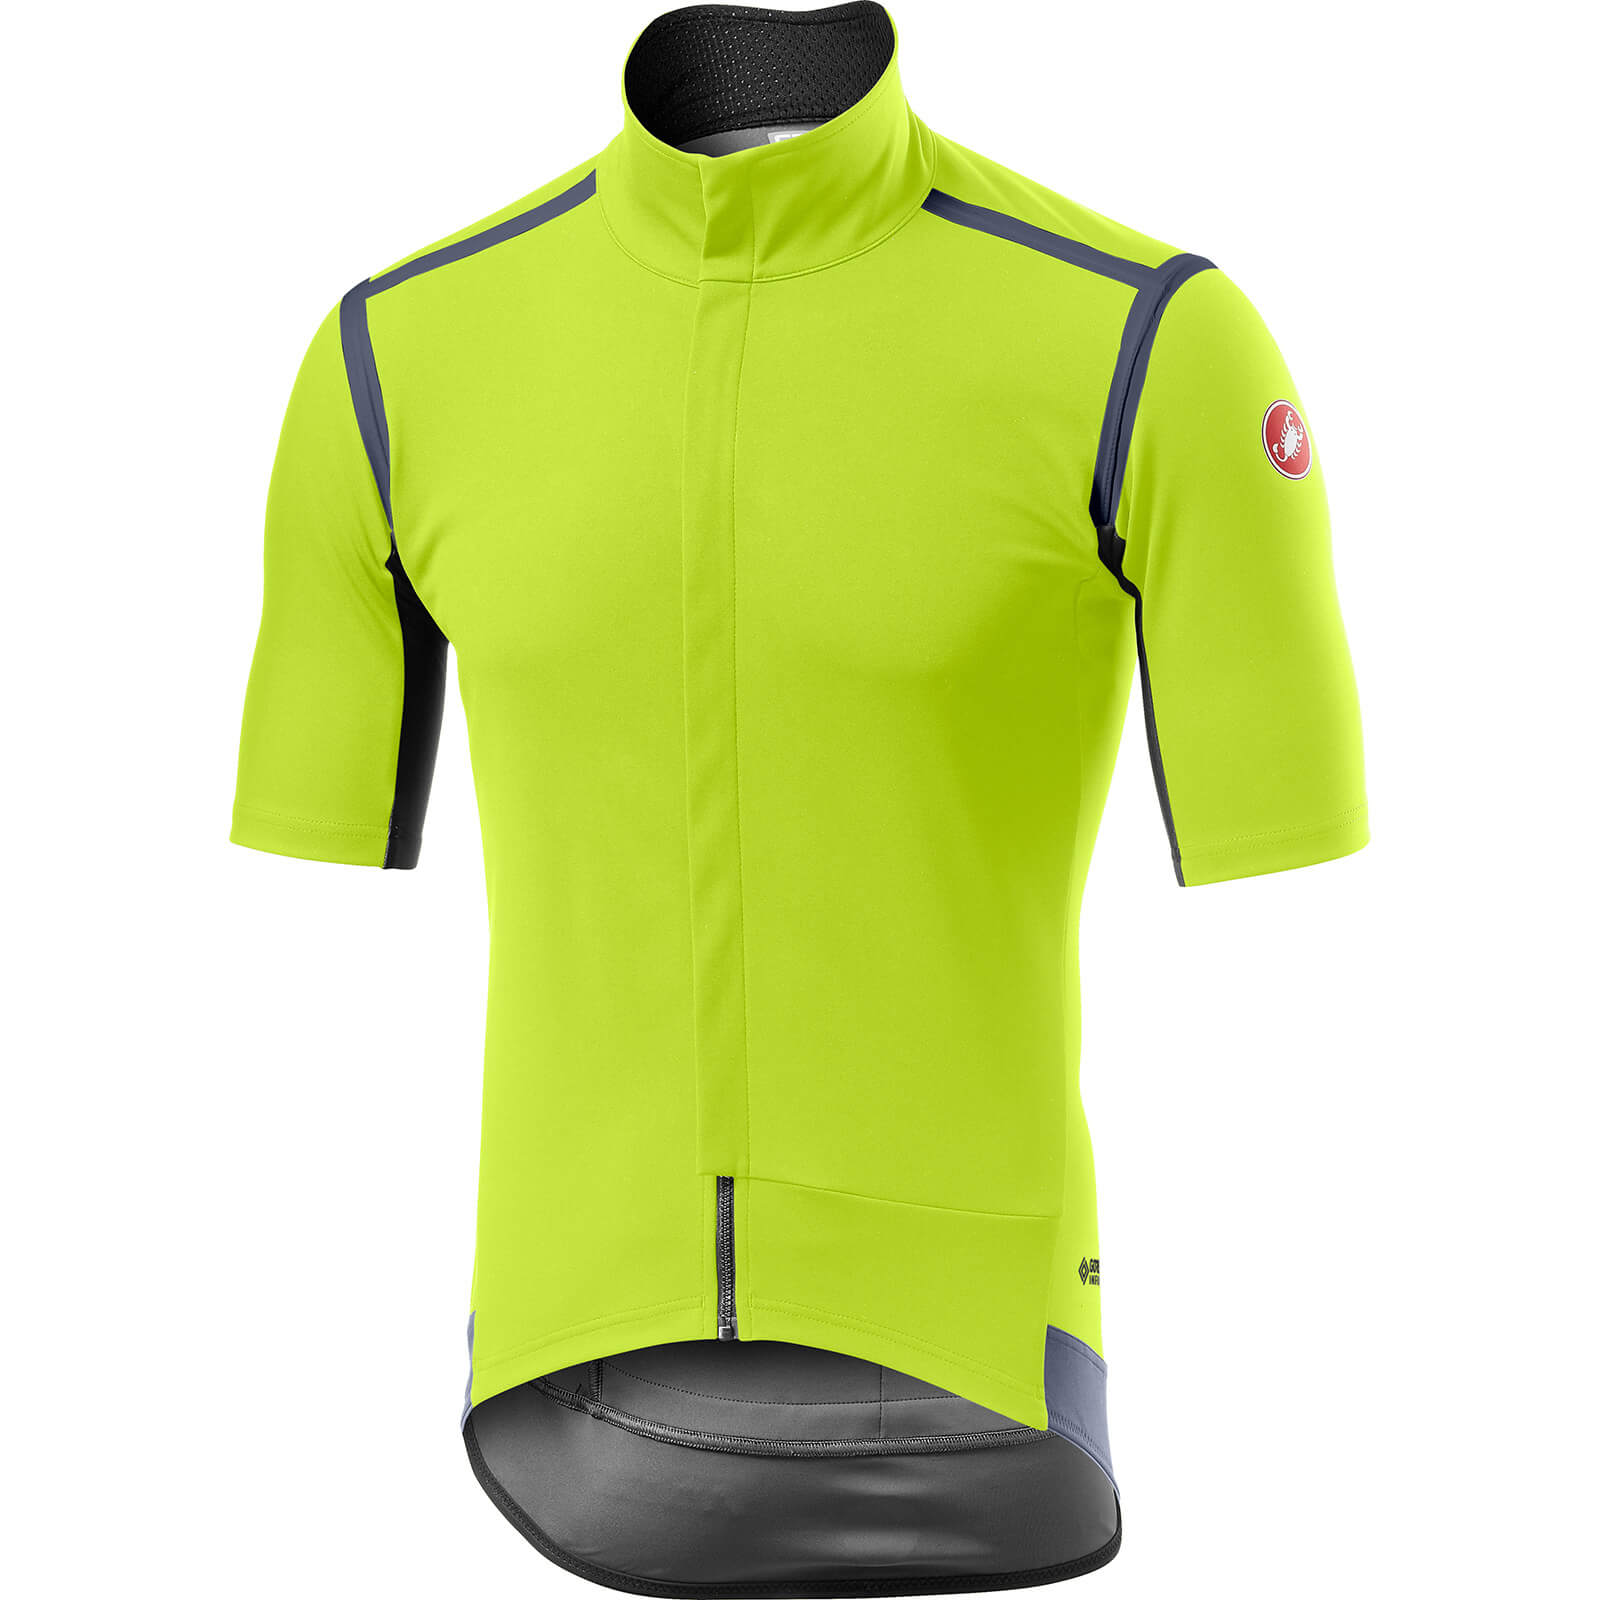 Image of Castelli Gabba RoS Jersey - XL - Yellow Fluo